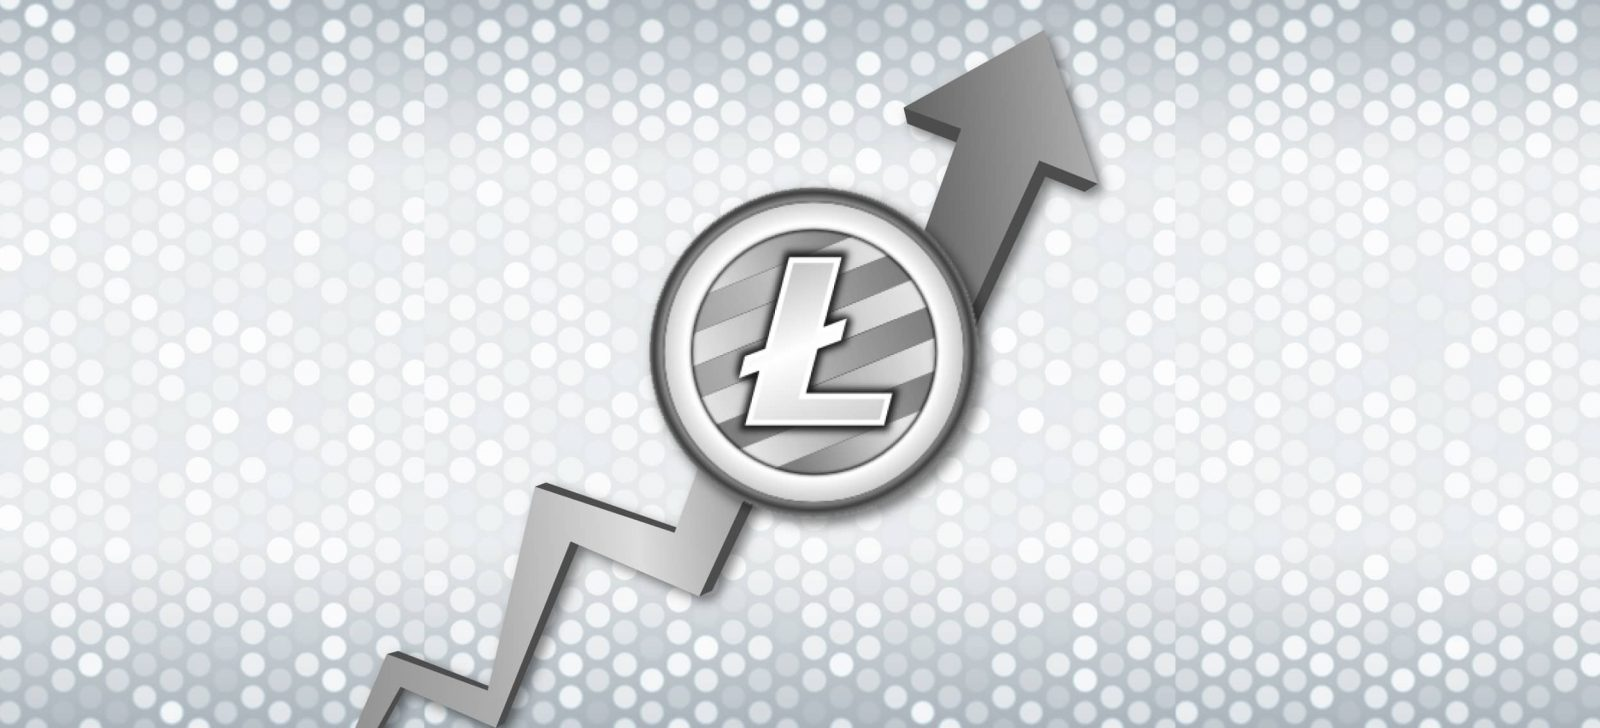 Buy Litecoin (LTC) India - BuyBitcoin